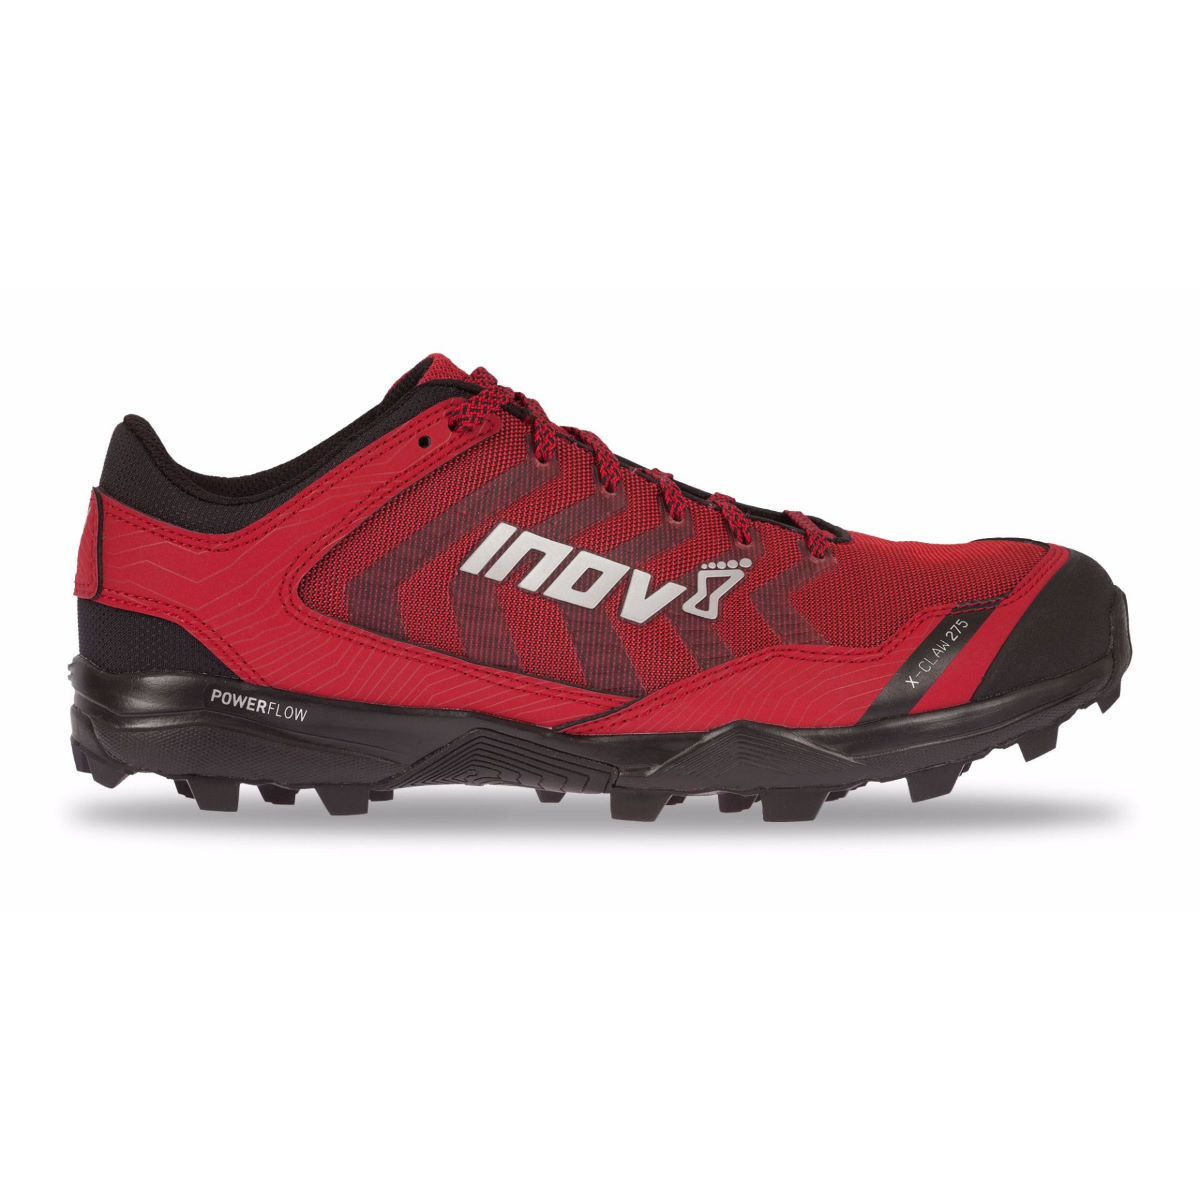 Chaussures Inov-8 X-Claw 275 - UK 10 RED/BLACK Chaussures de running trail